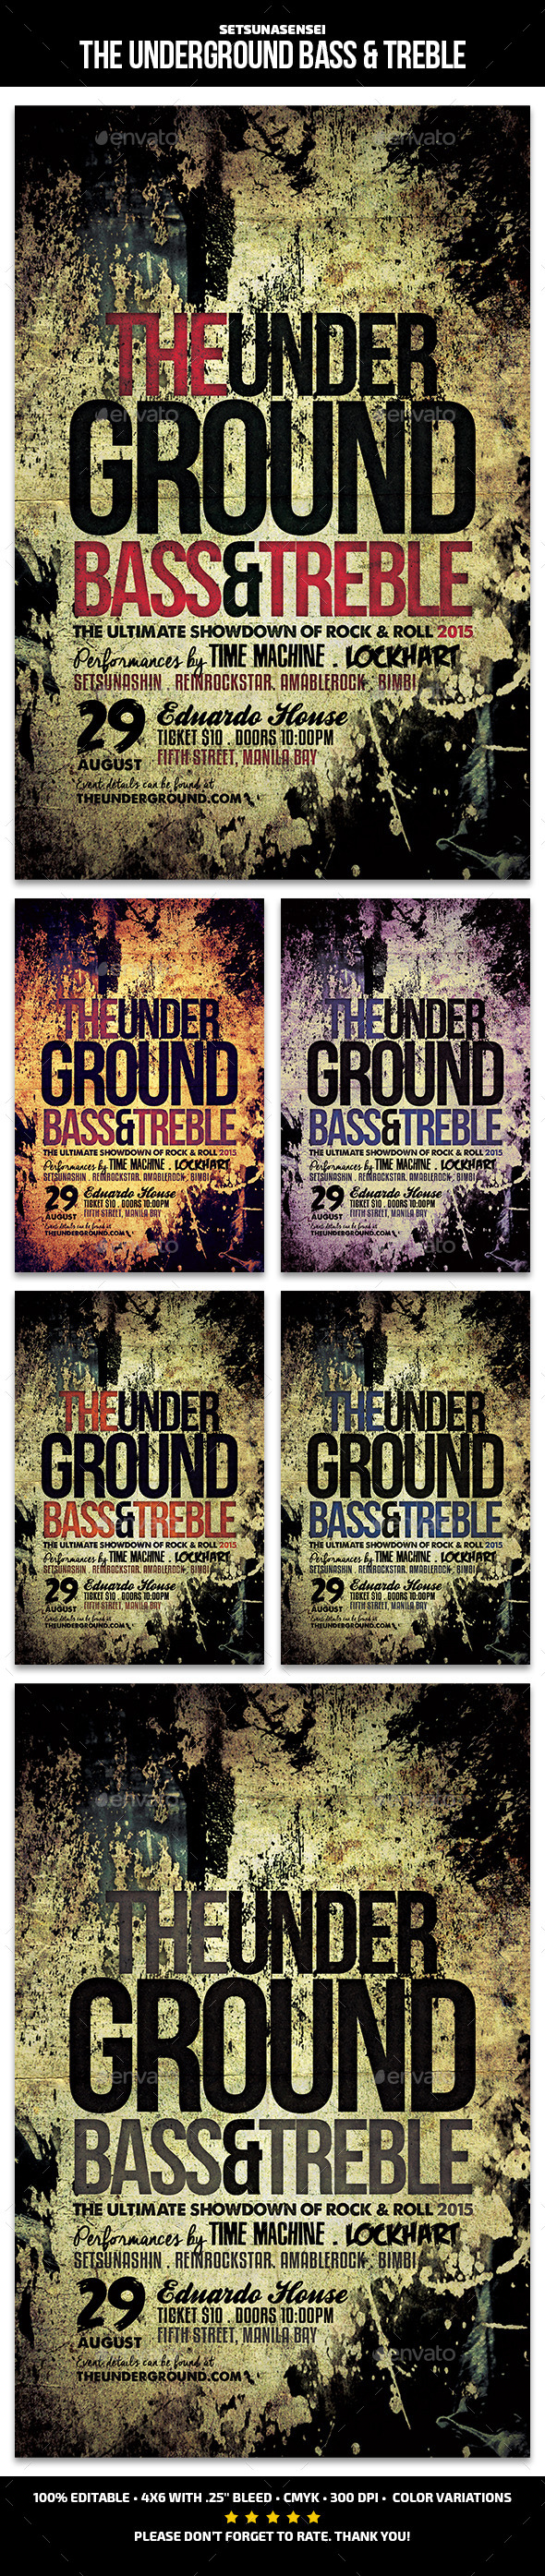 The Underground Bass and Treble